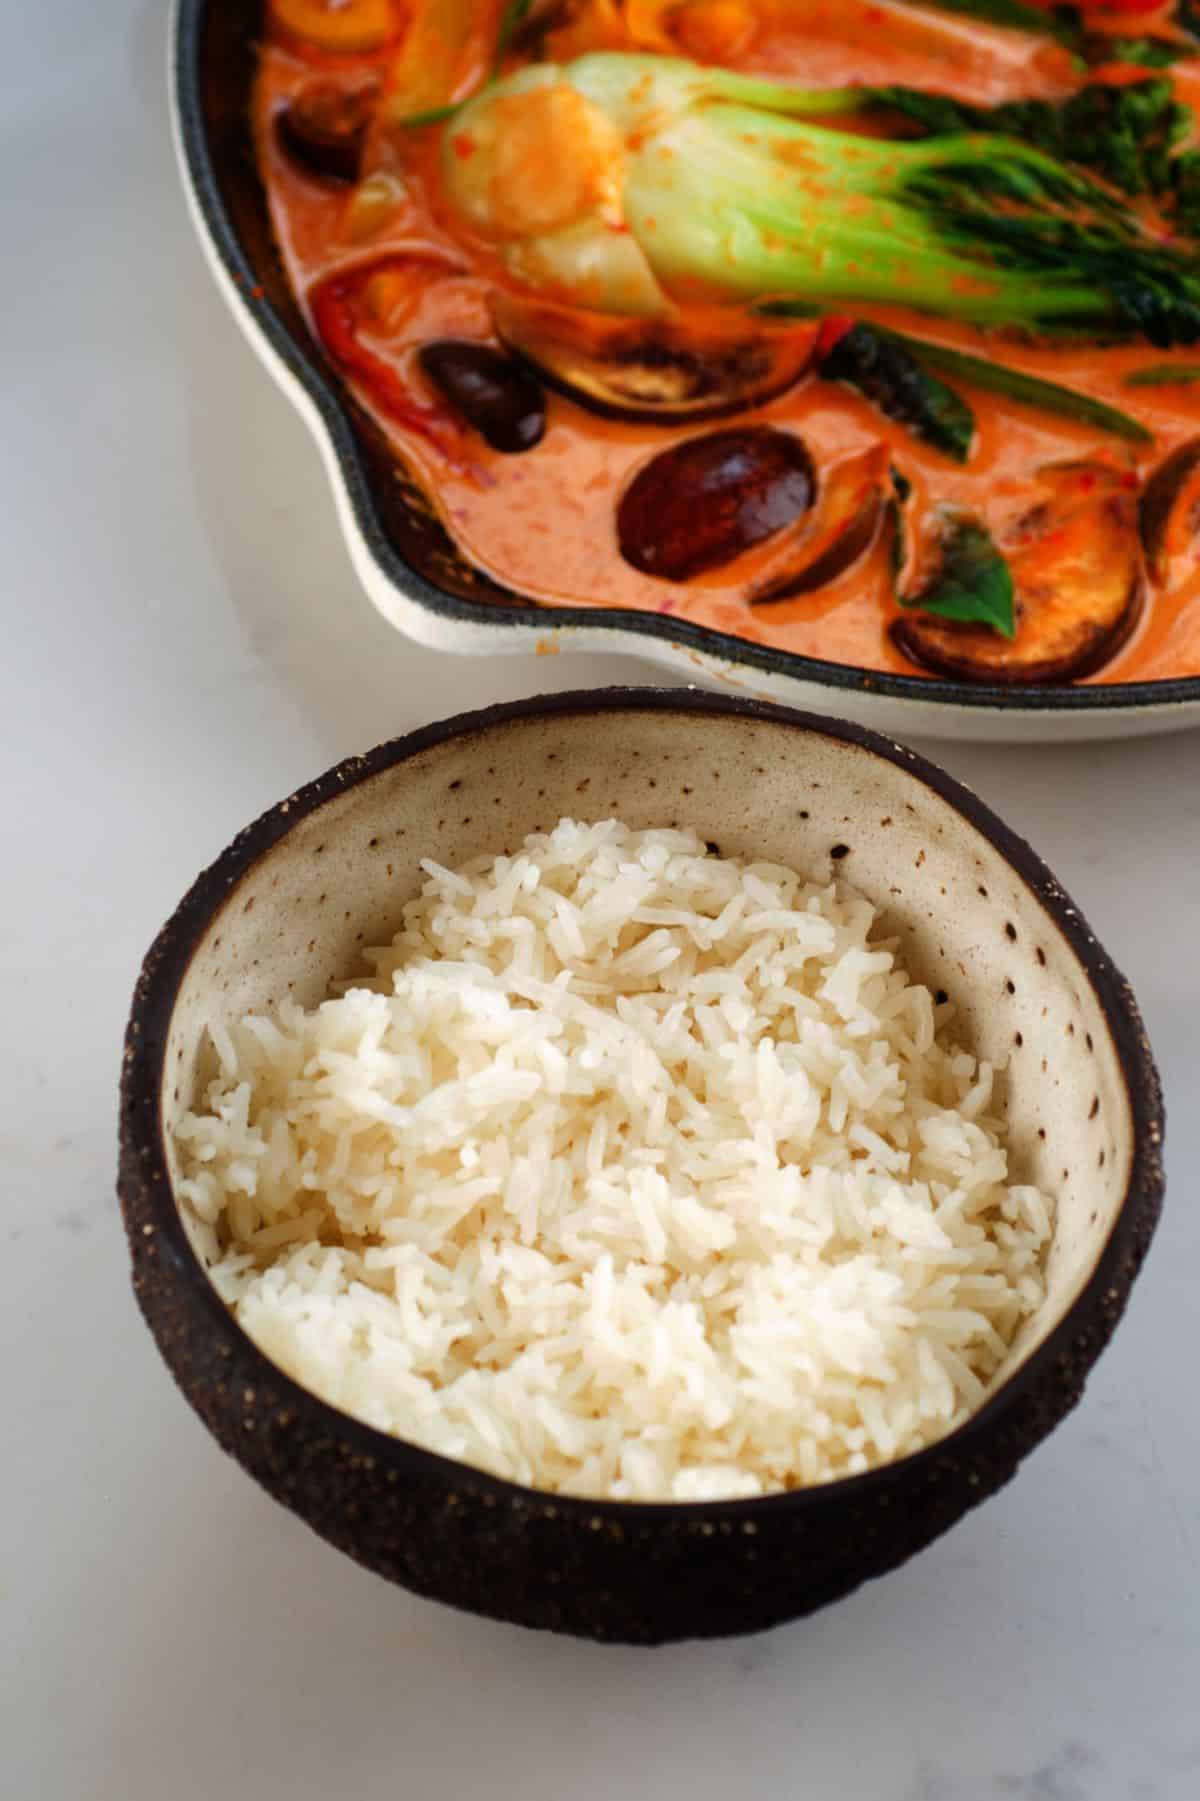 Jasmine rice in a bowl and Thai Red Curry in a pan